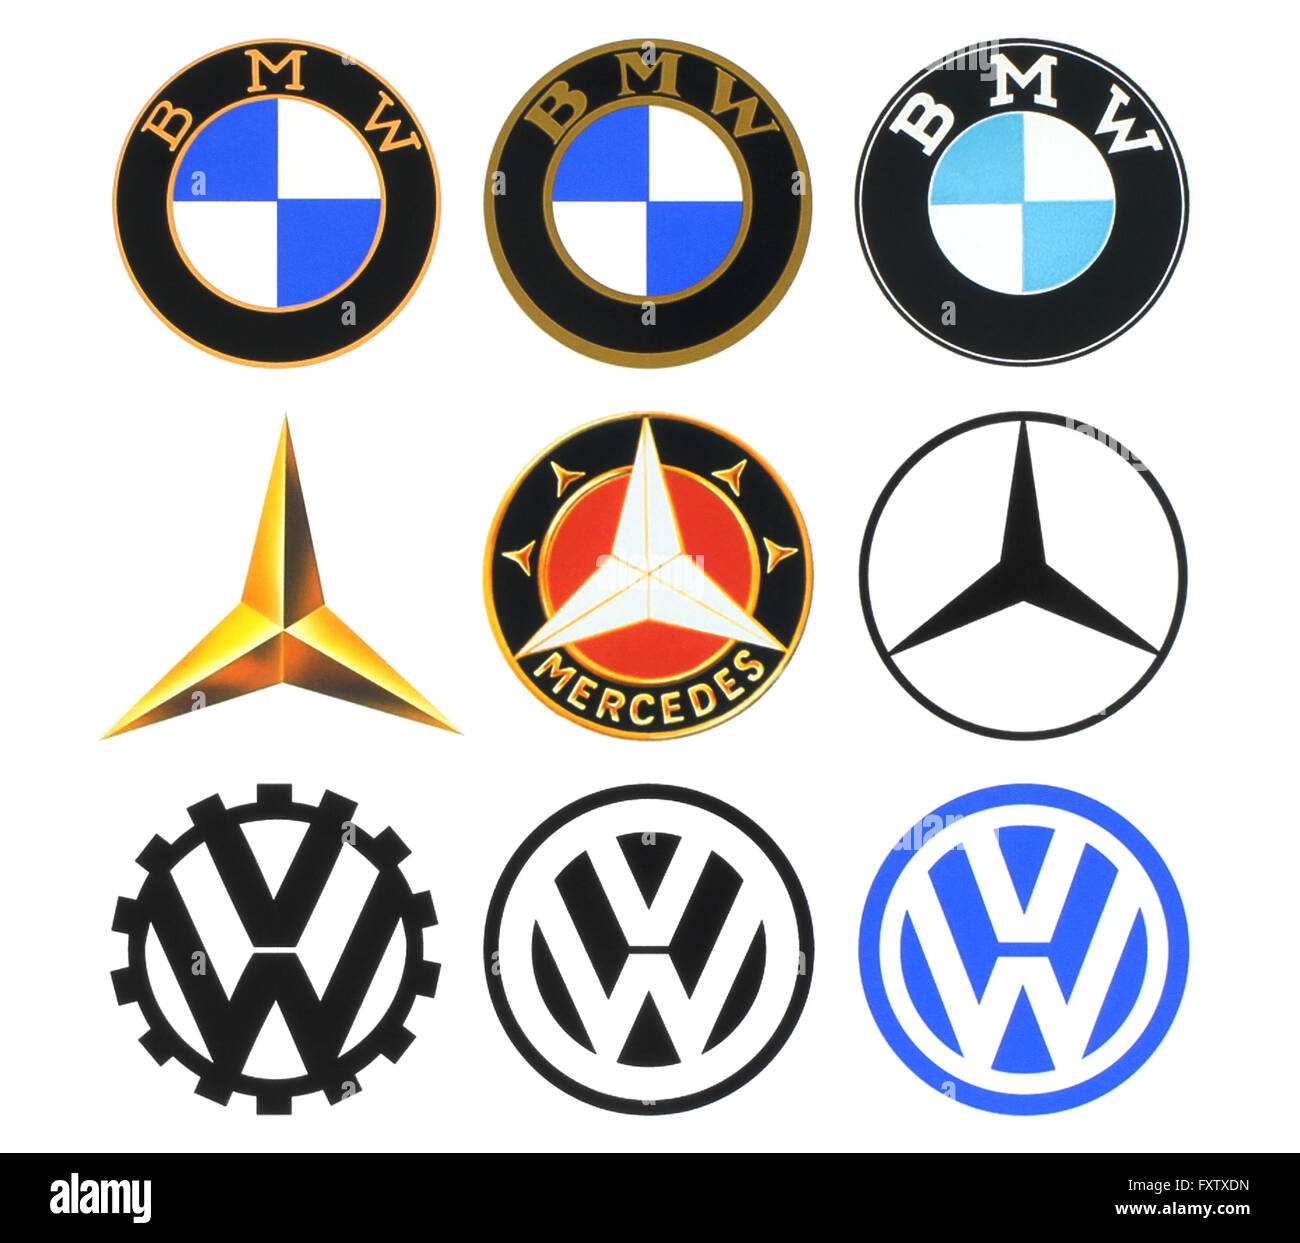 Kiev, Ukraine - March 16, 2016: Collection of retro car logos printed on white paper: Volkswagen, BMW and Mercedes - Stock Image